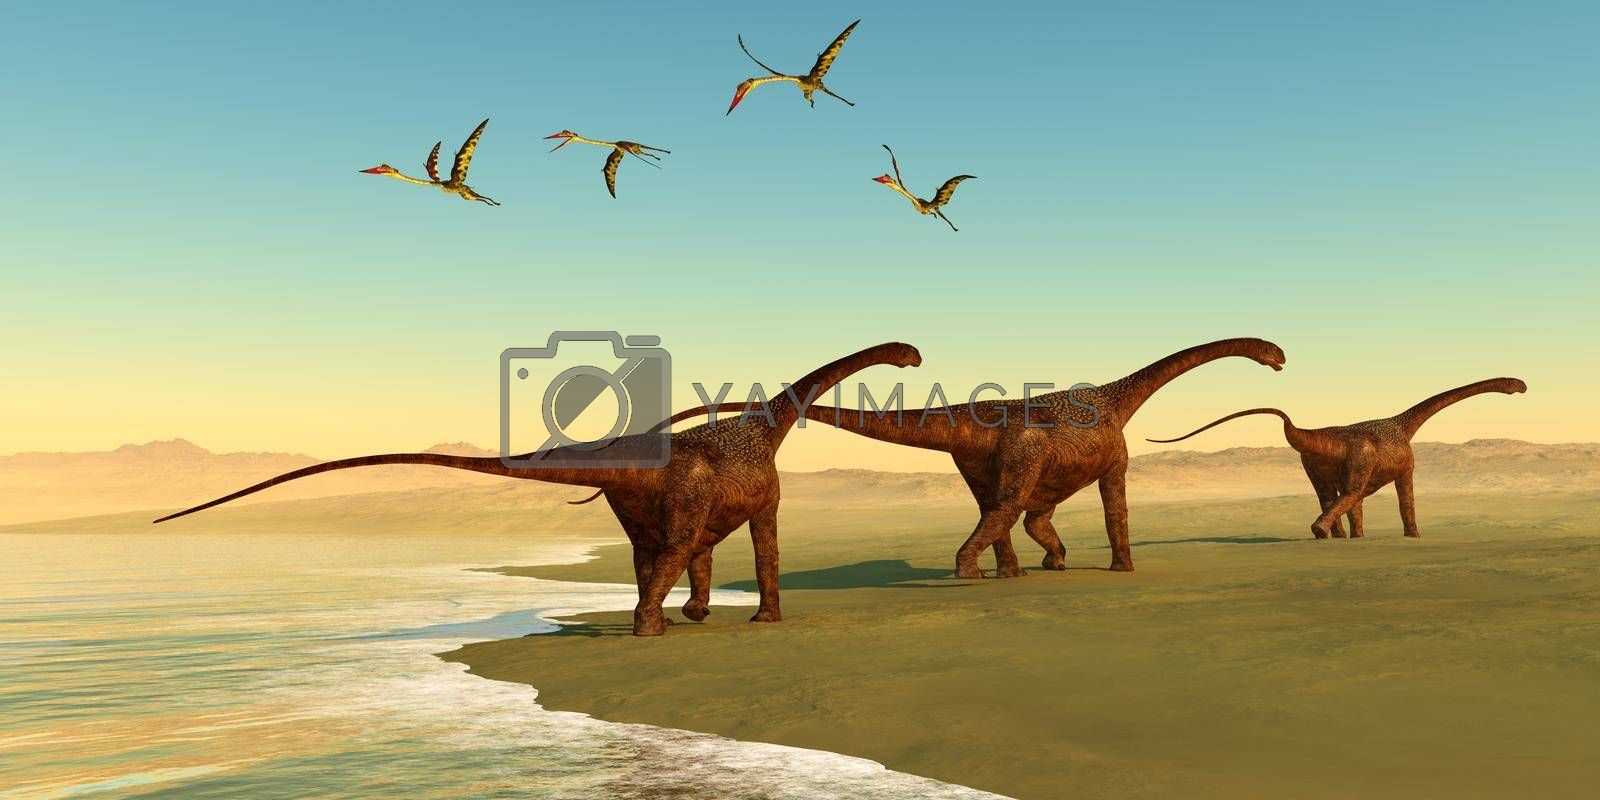 Quetzalcoatlus reptiles fly out to sea as a herd of Malawisaurus dinosaurs go in search of vegetation to eat.